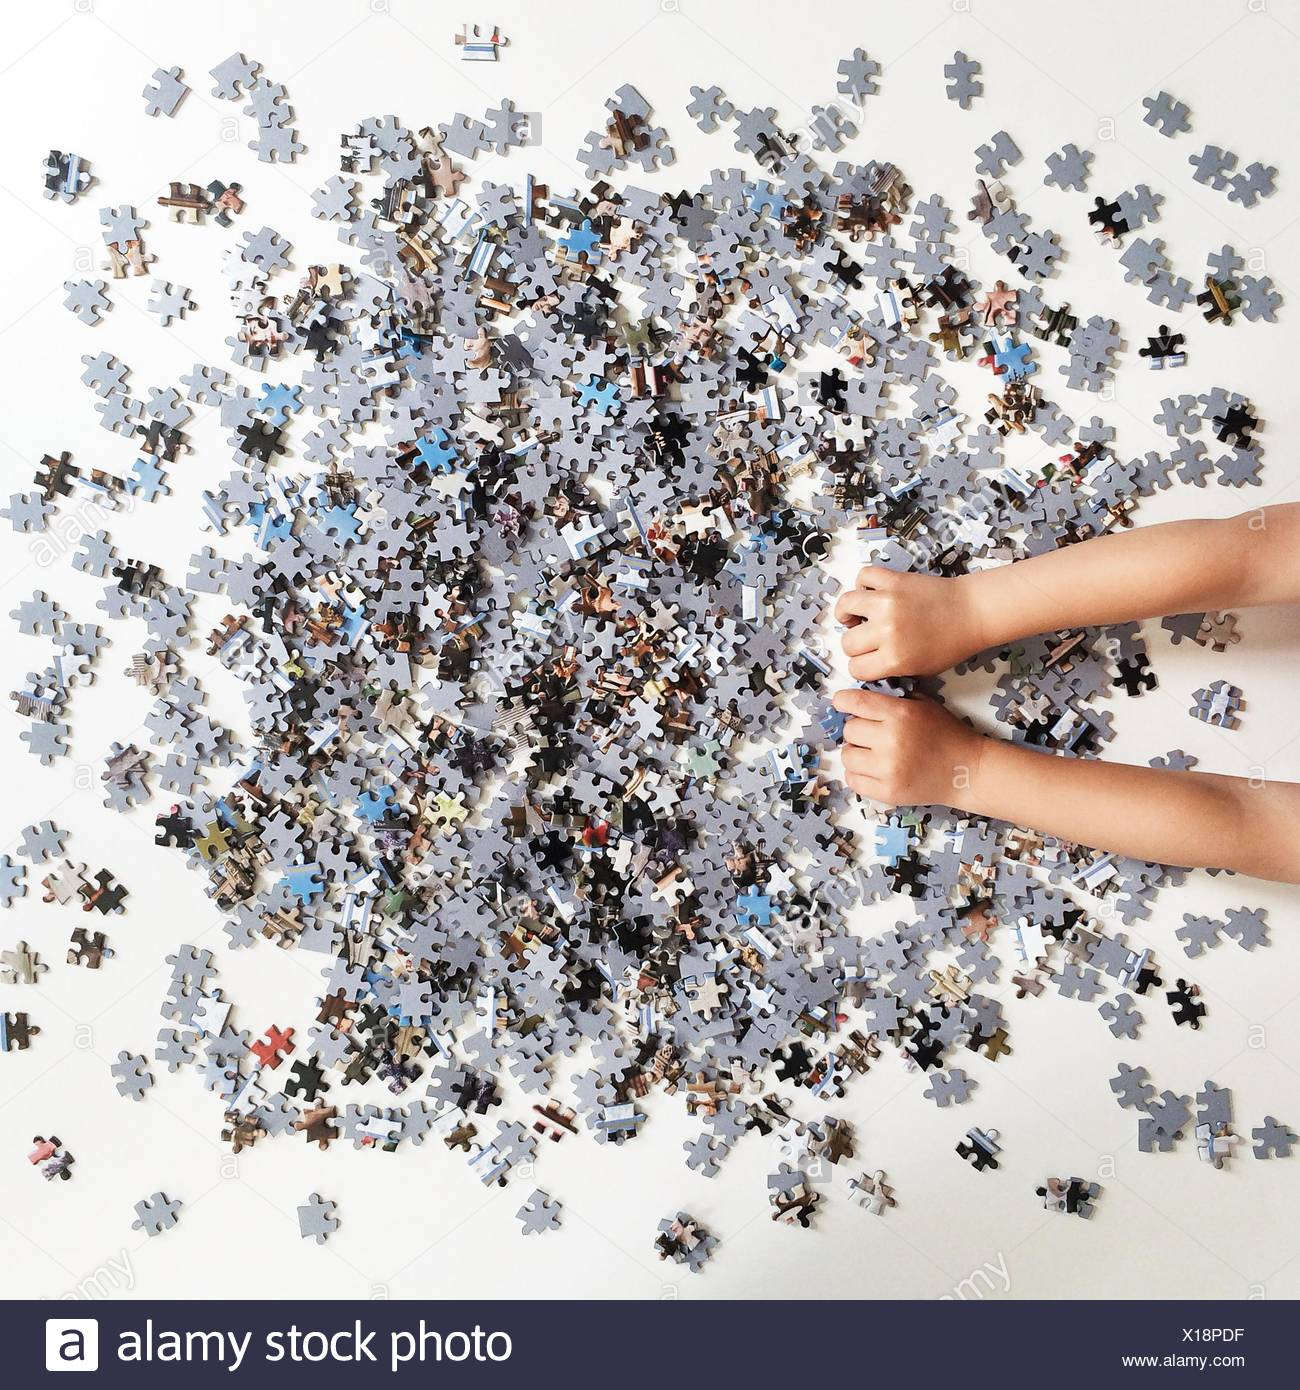 Human hands playing with jigsaw puzzle pieces - Stock Image